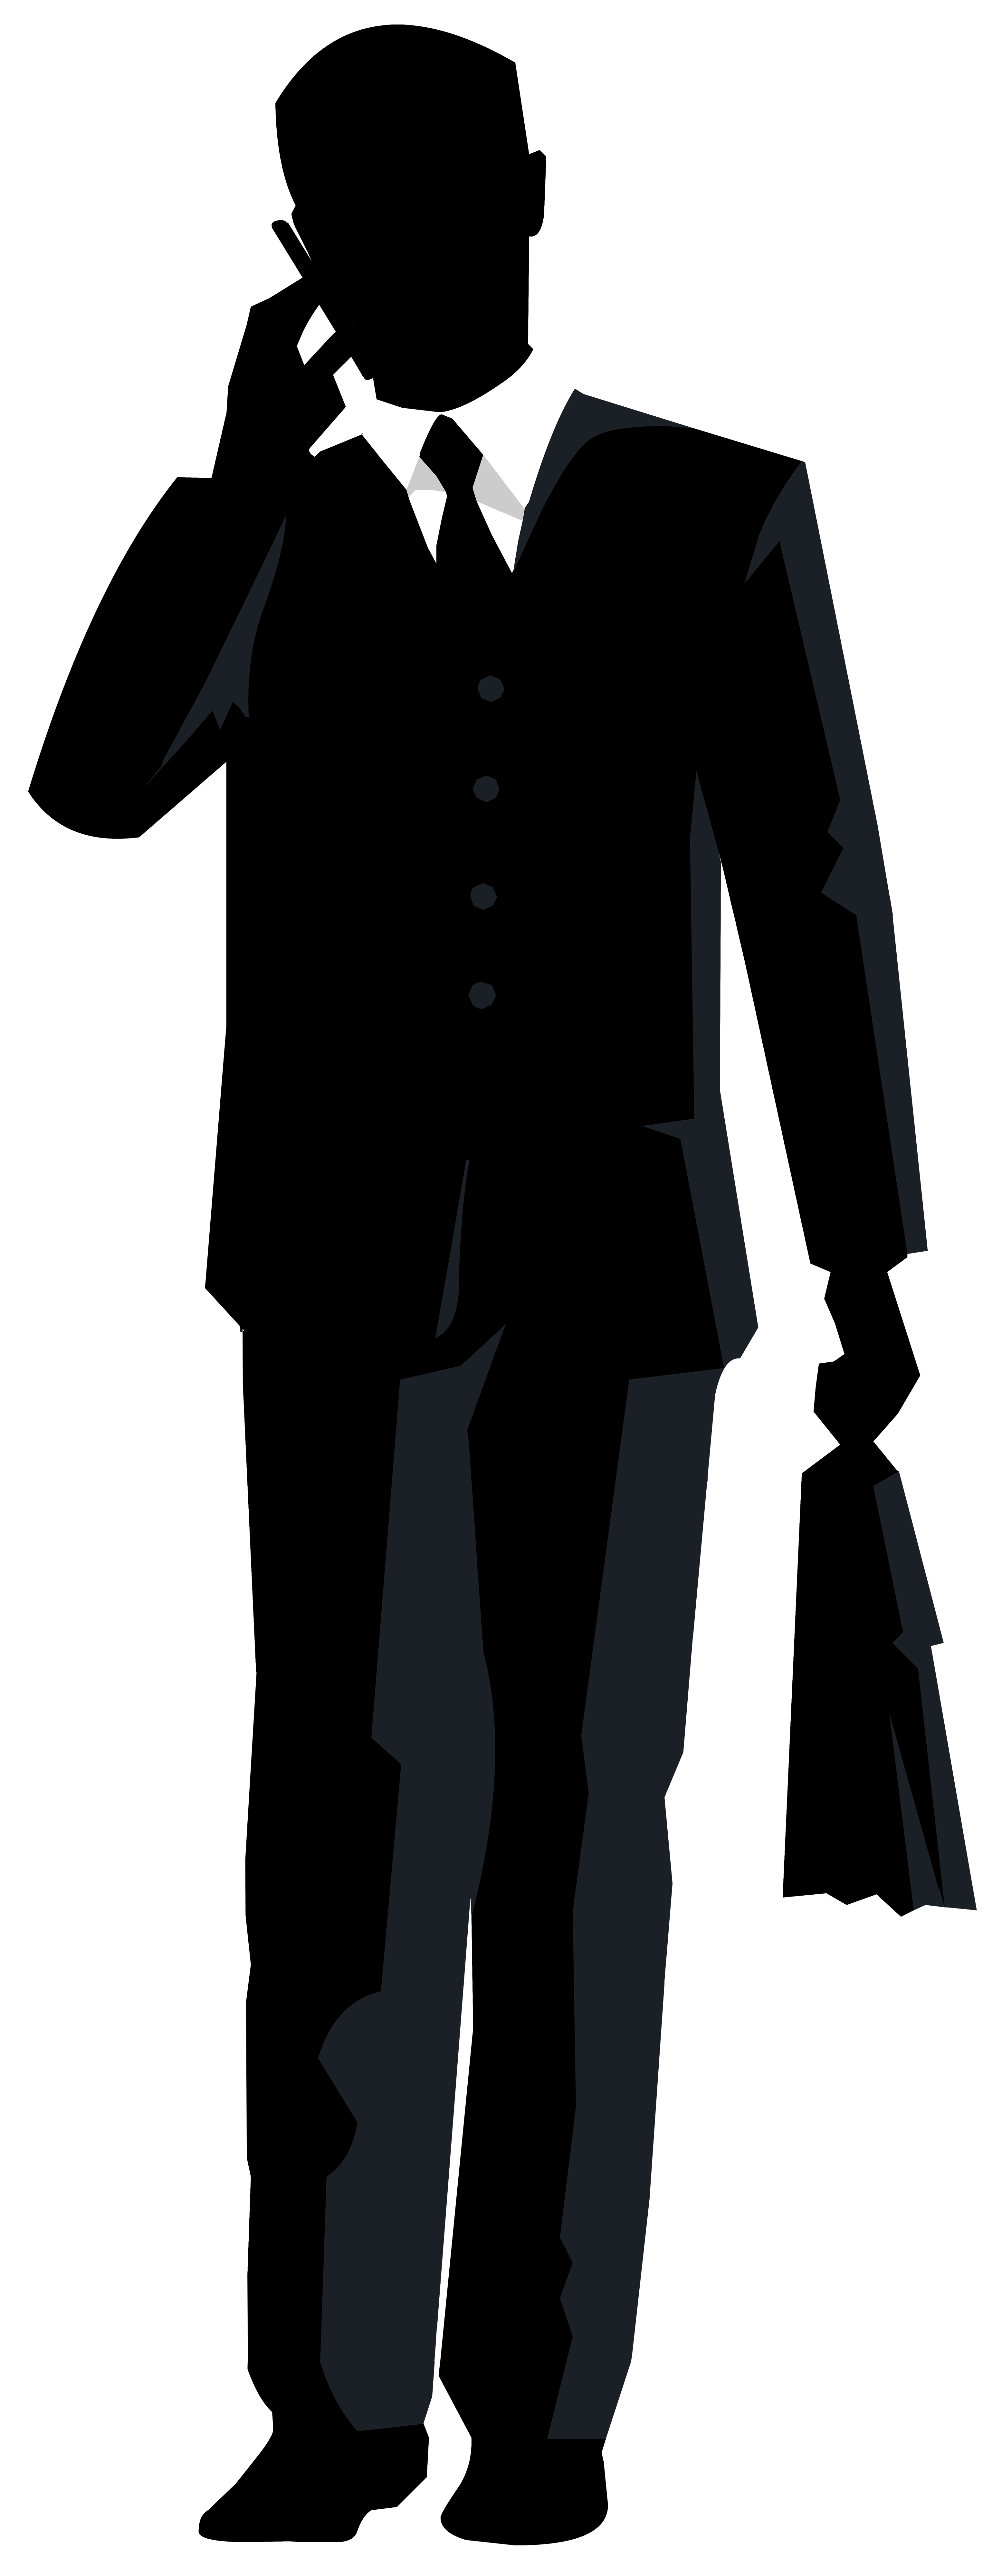 3111x8000 Businessman Silhouette Png Transparent Clip Art Imageu200b Gallery